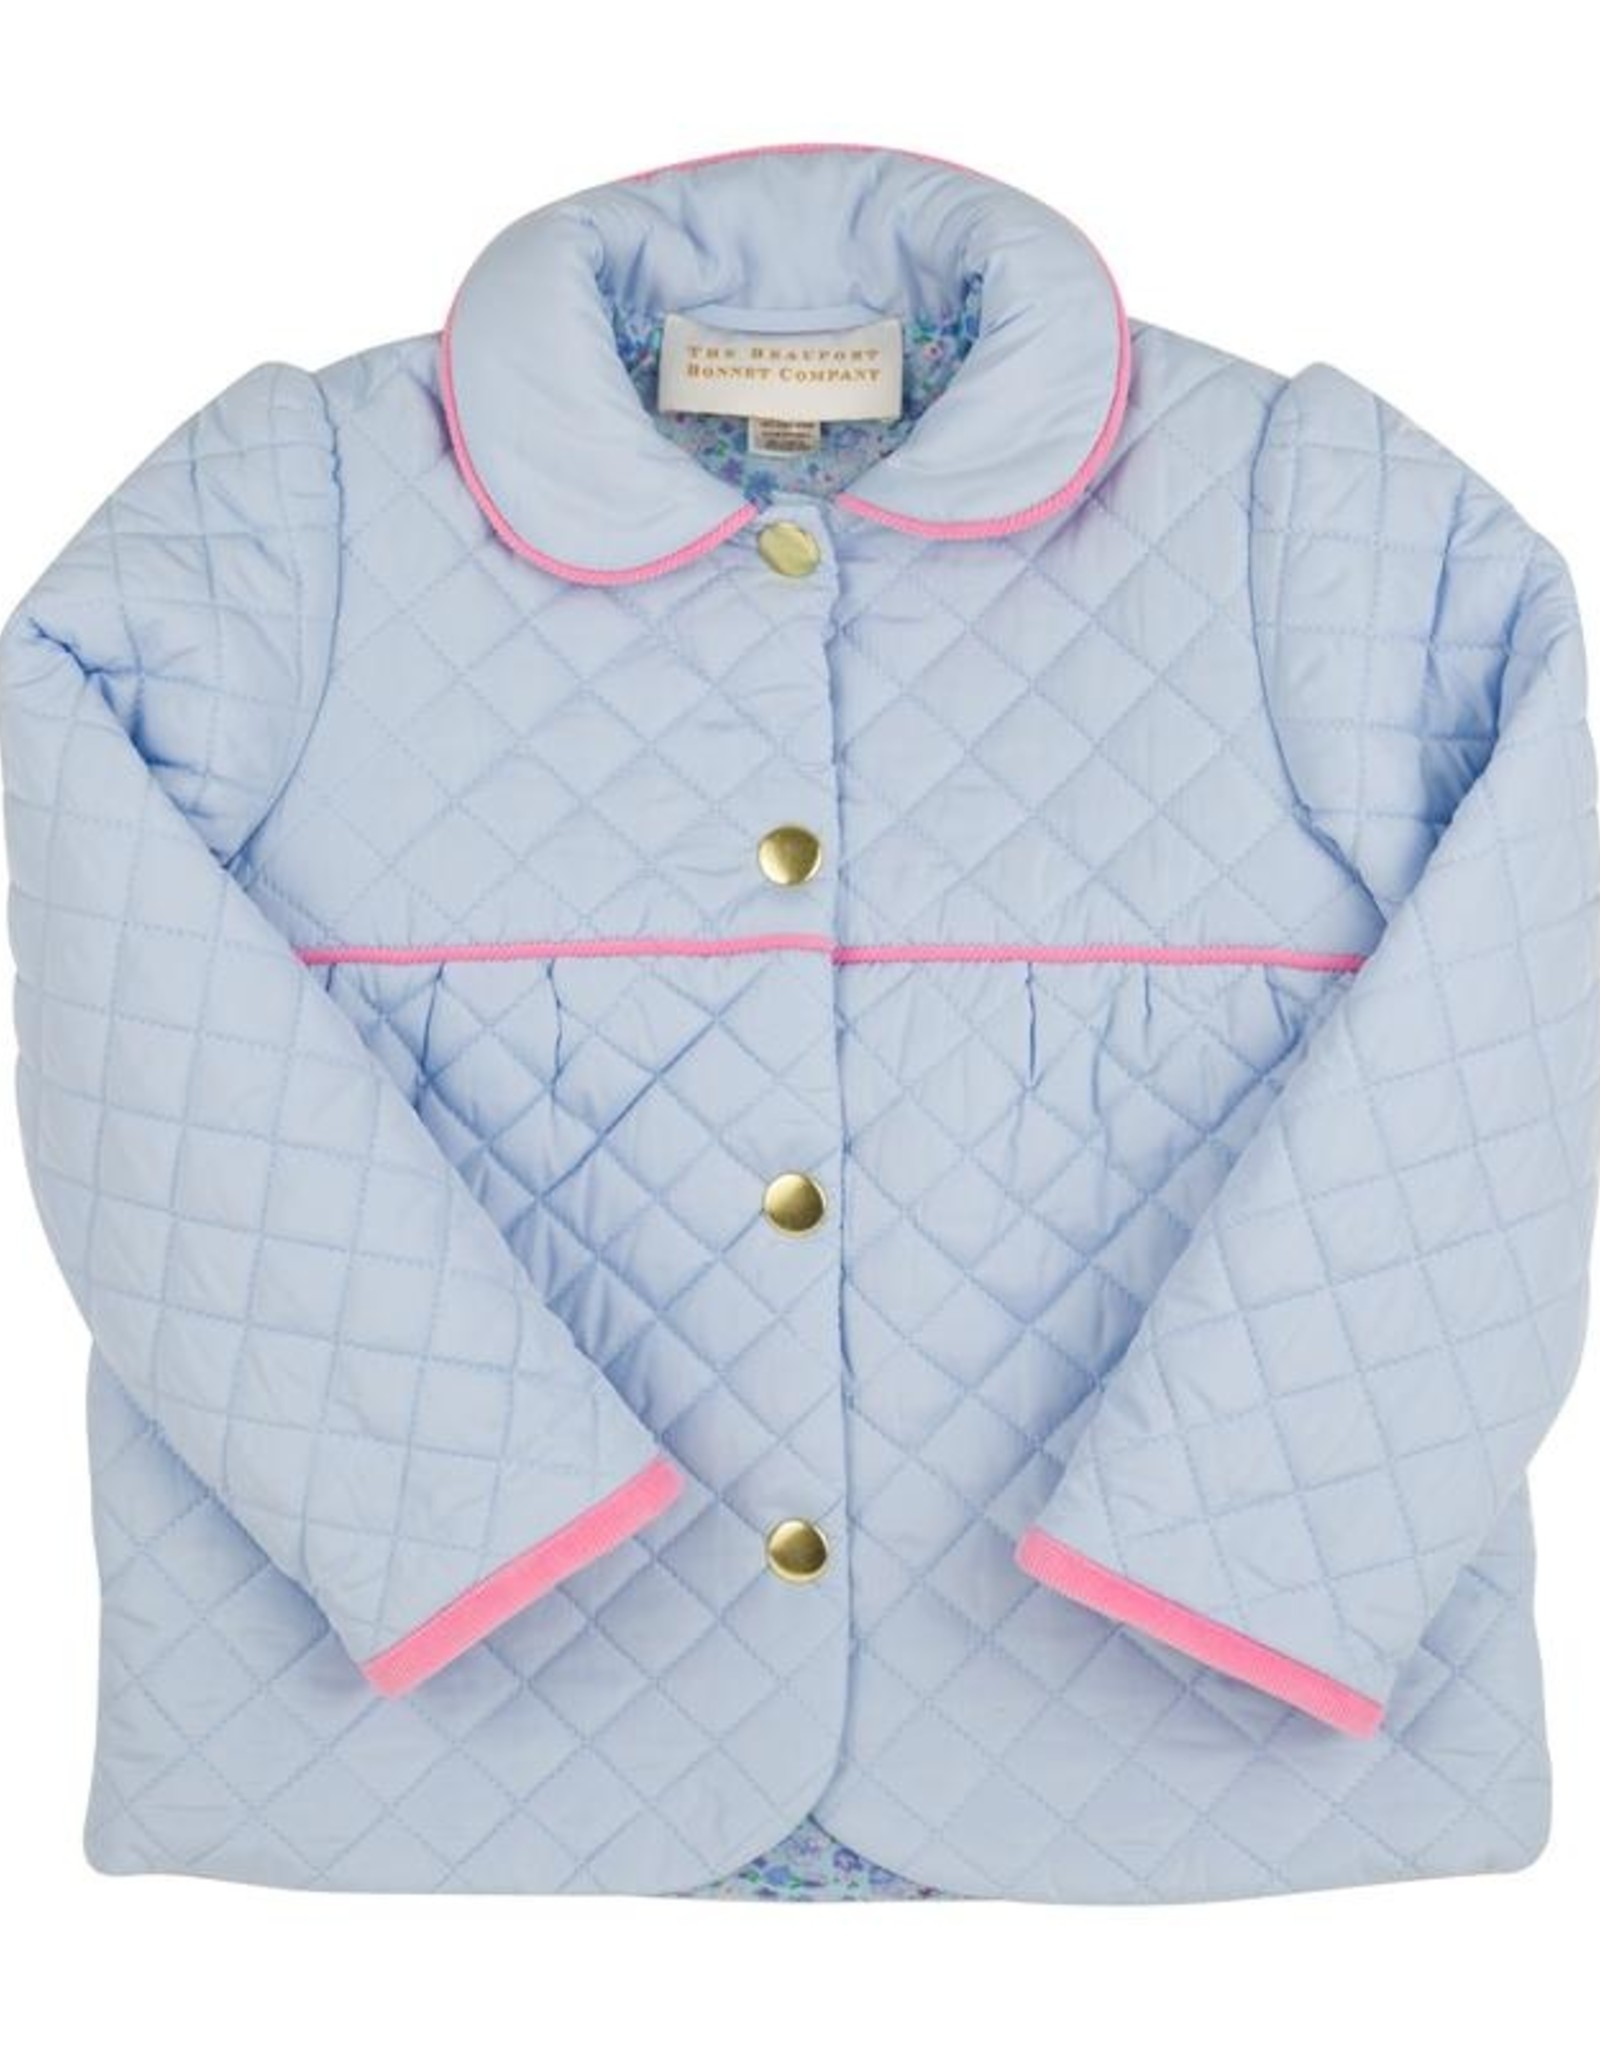 The Beaufort Bonnet Company Carlyle Quilted Coat, Mableton Minnie Floral